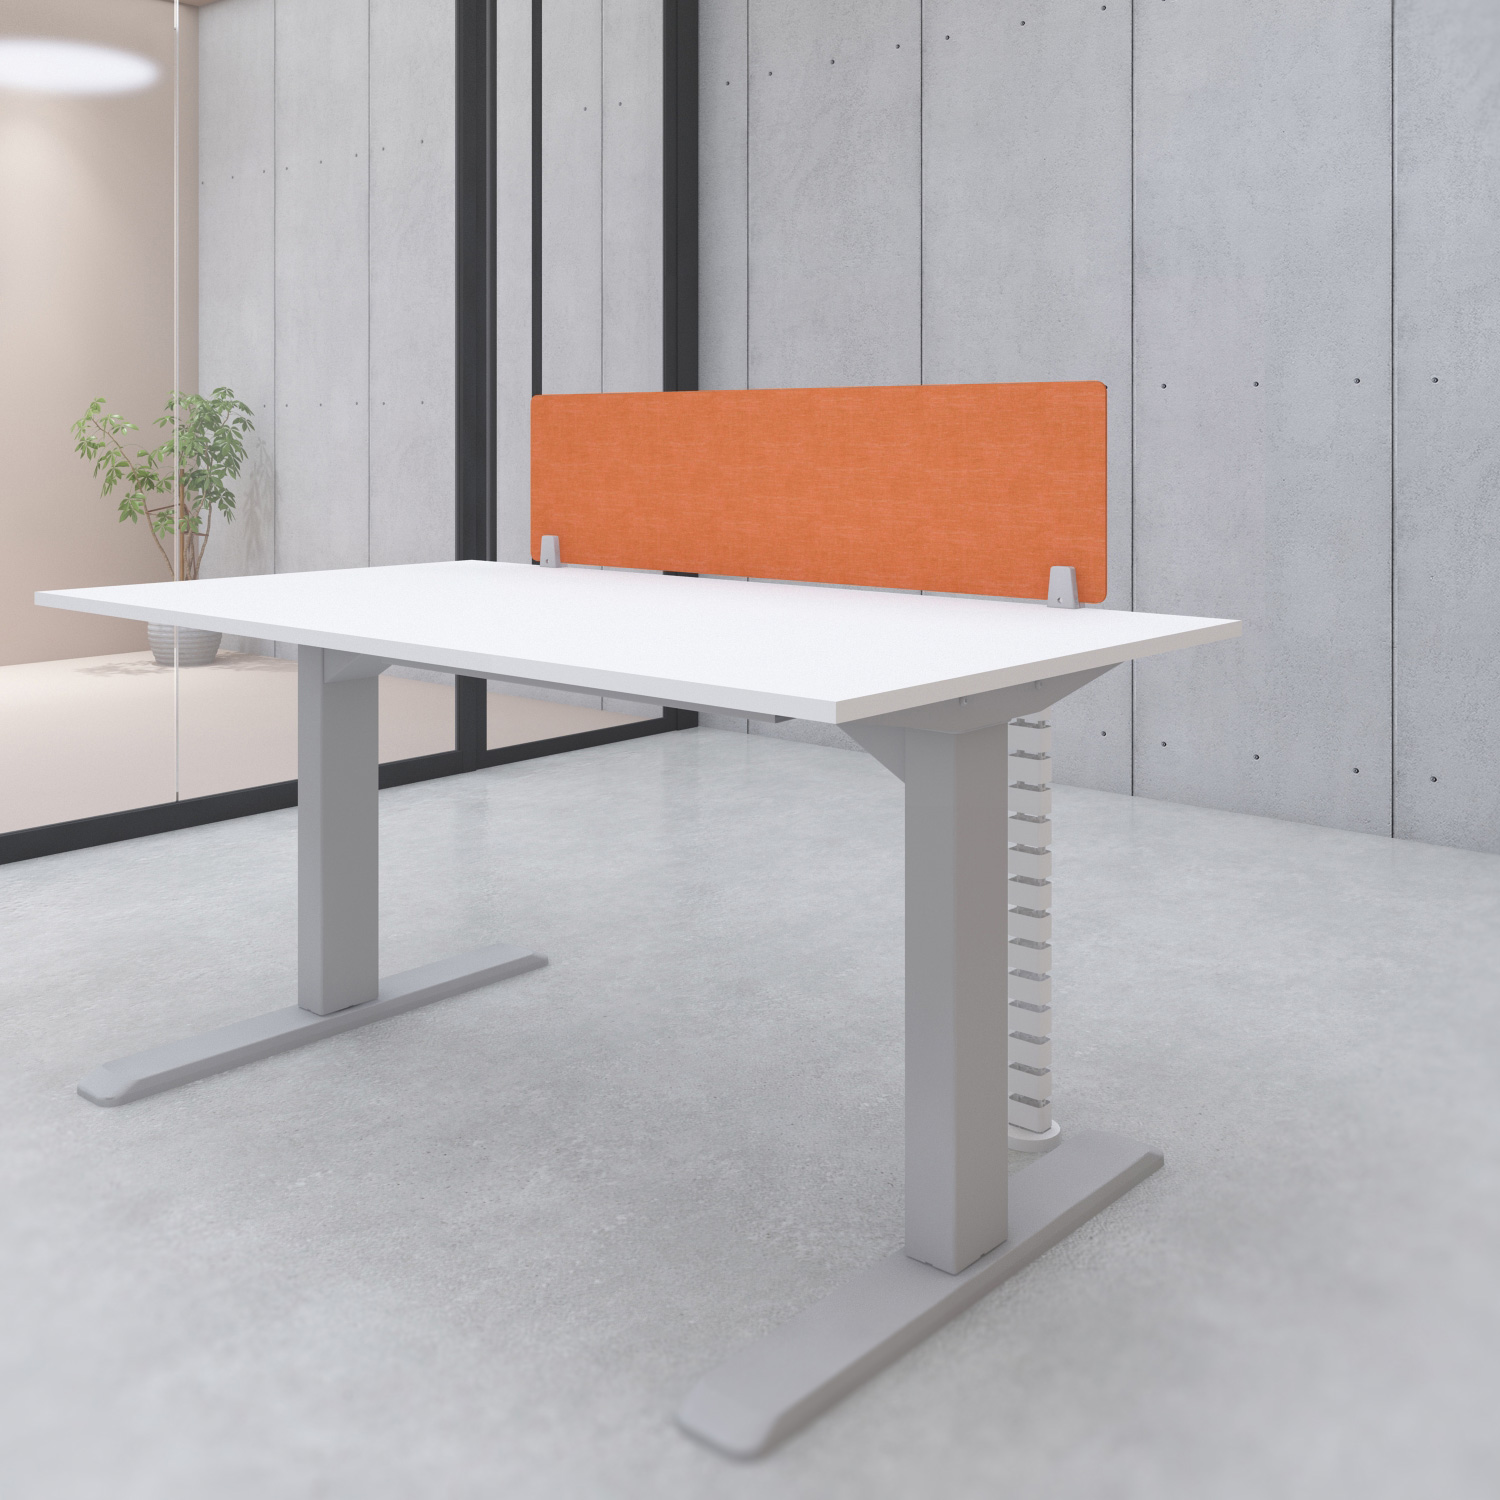 s144or acoustic desk privacy screen divider orange